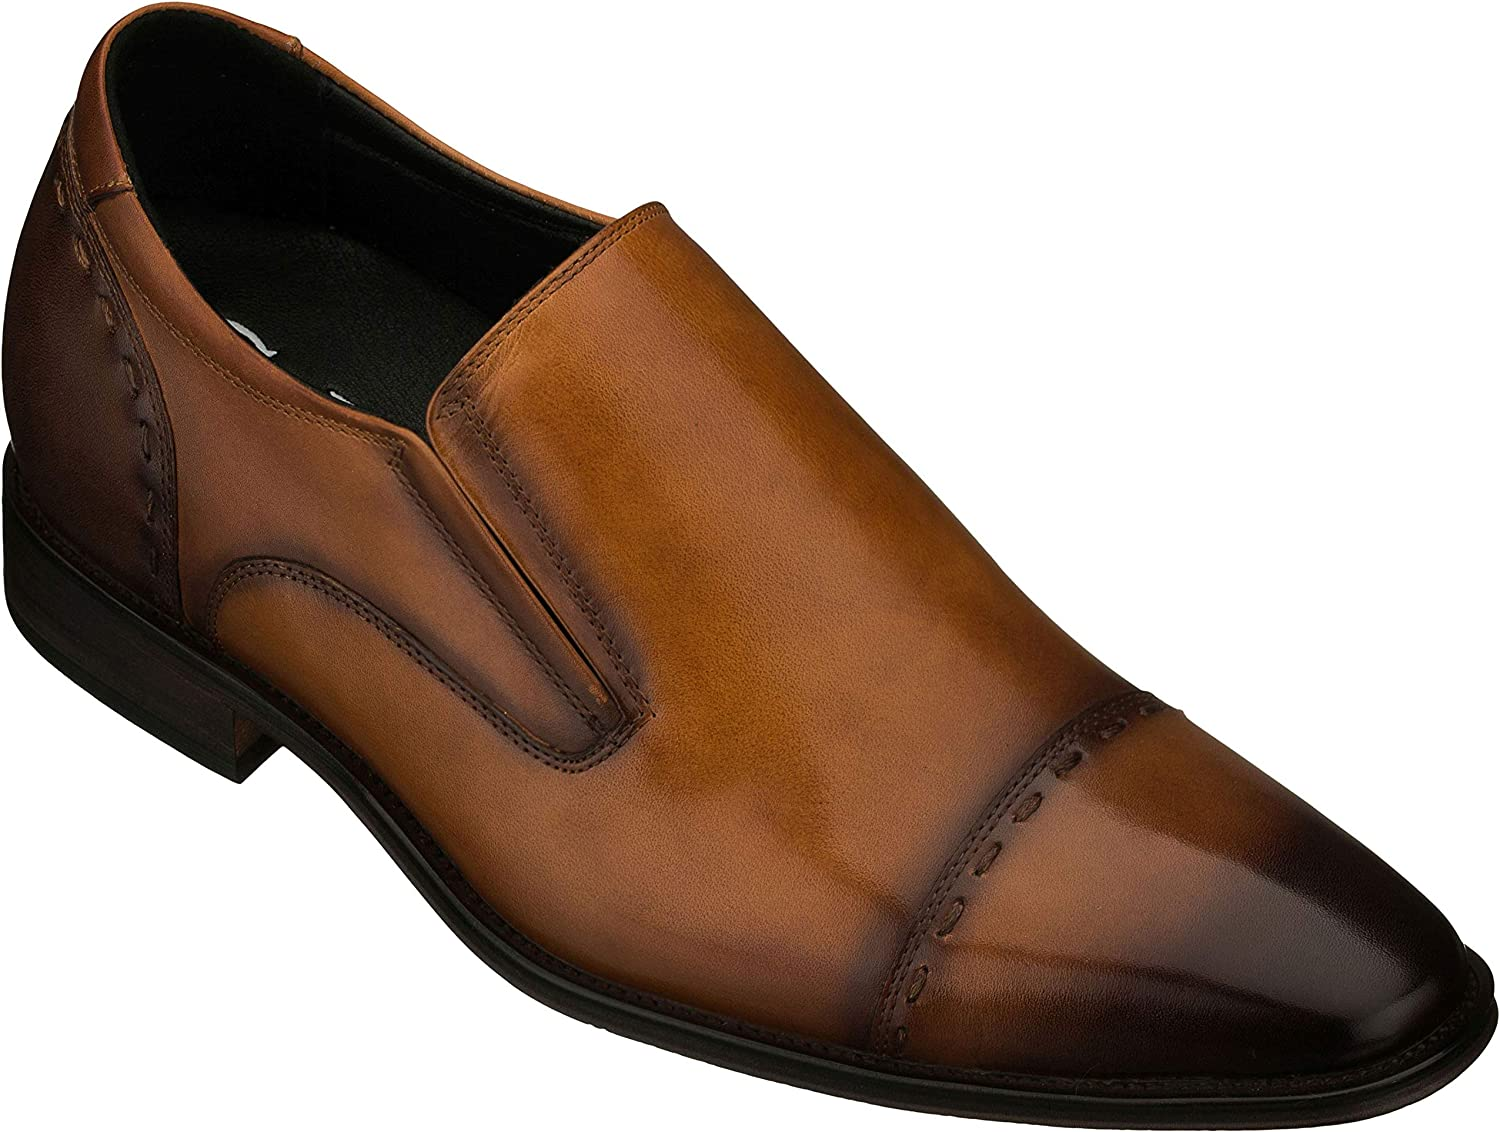 CALTO Men's Invisible Height Increasing Elevator Shoes - Leather Slip-on Formal Dress Loafers- 2.8 Inches Taller